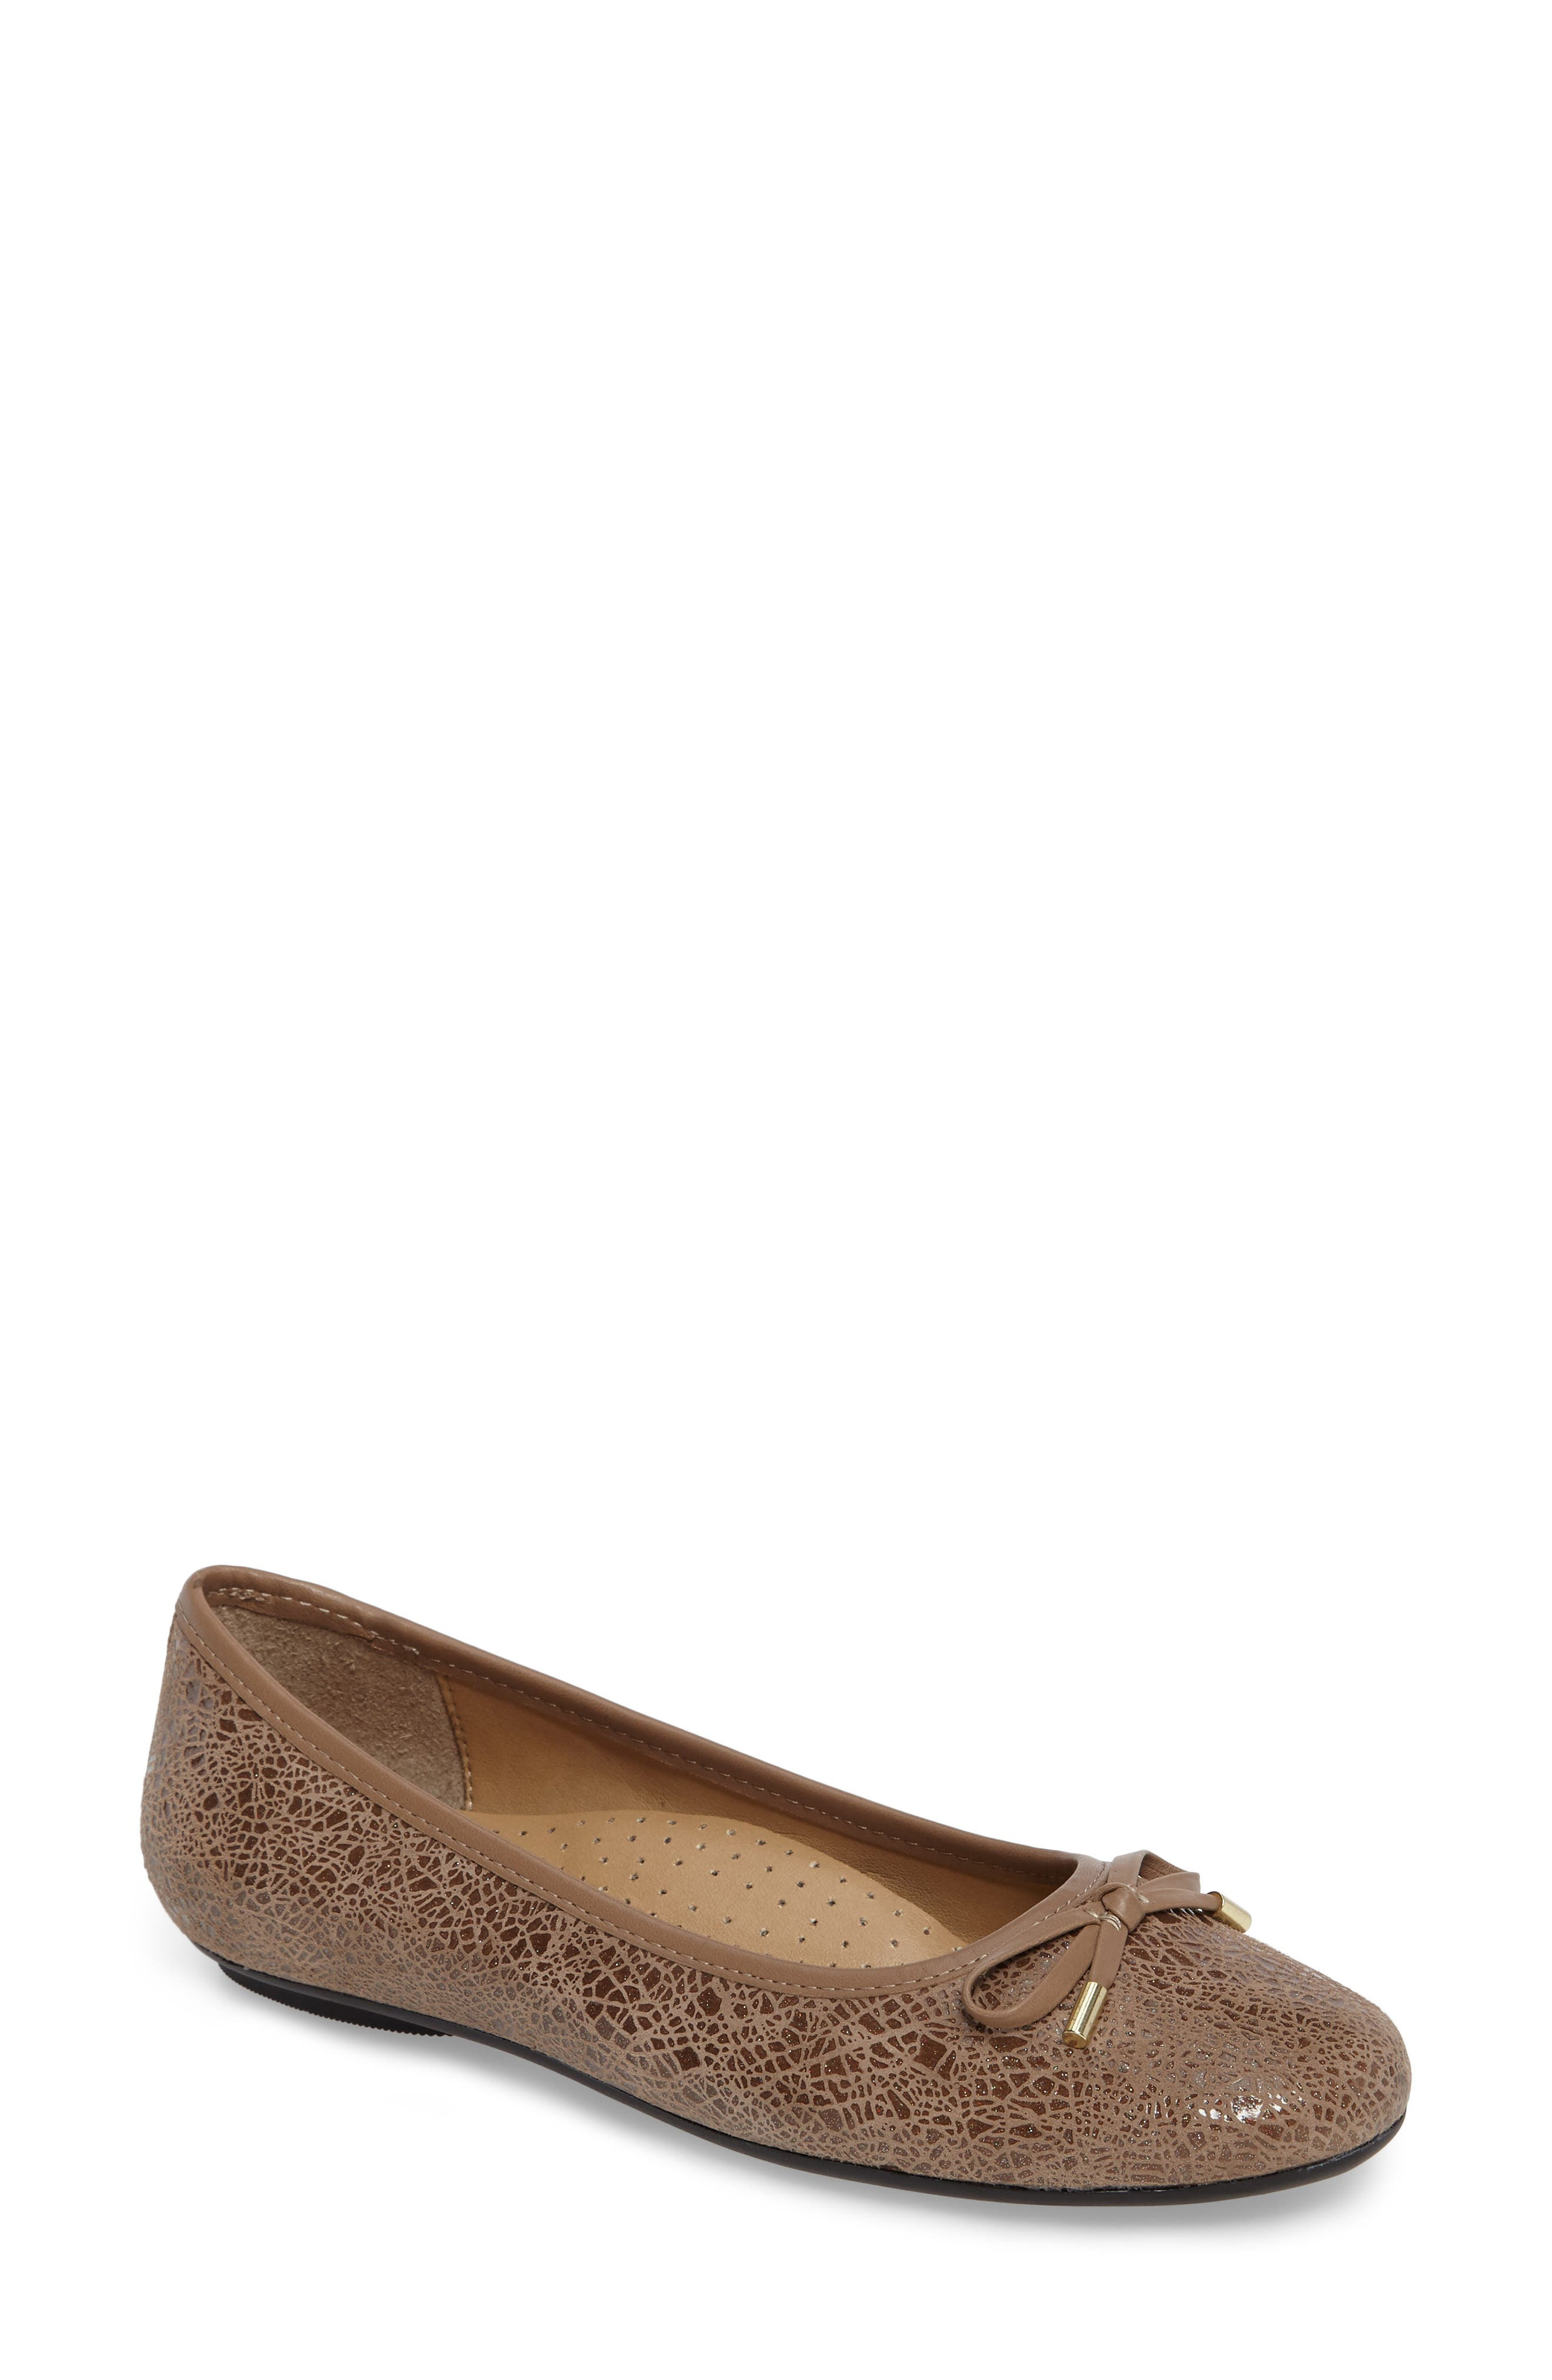 'Signy' Ballet Flat,                             Main thumbnail 1, color,                             Taupe Print Leather